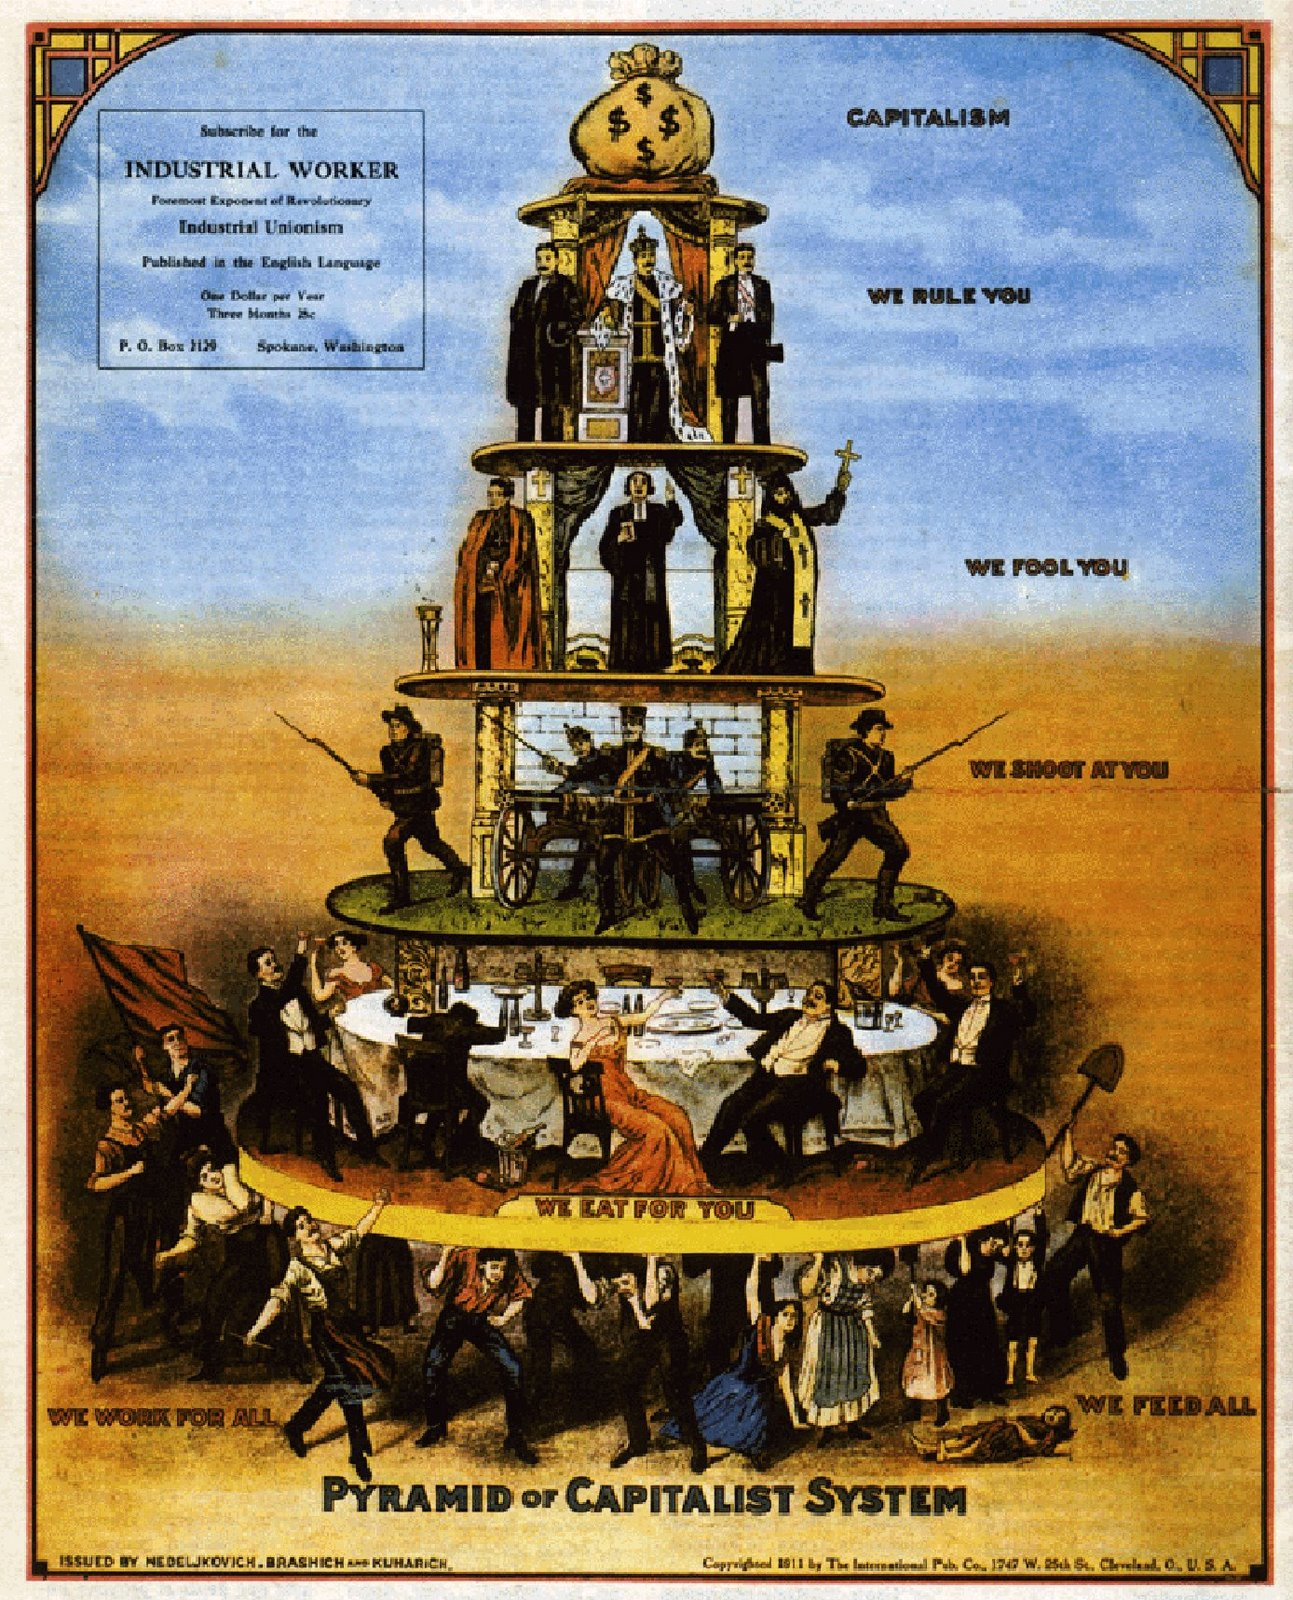 Pyramid of Death: Who REALLY Runs This World?  Capitalism1